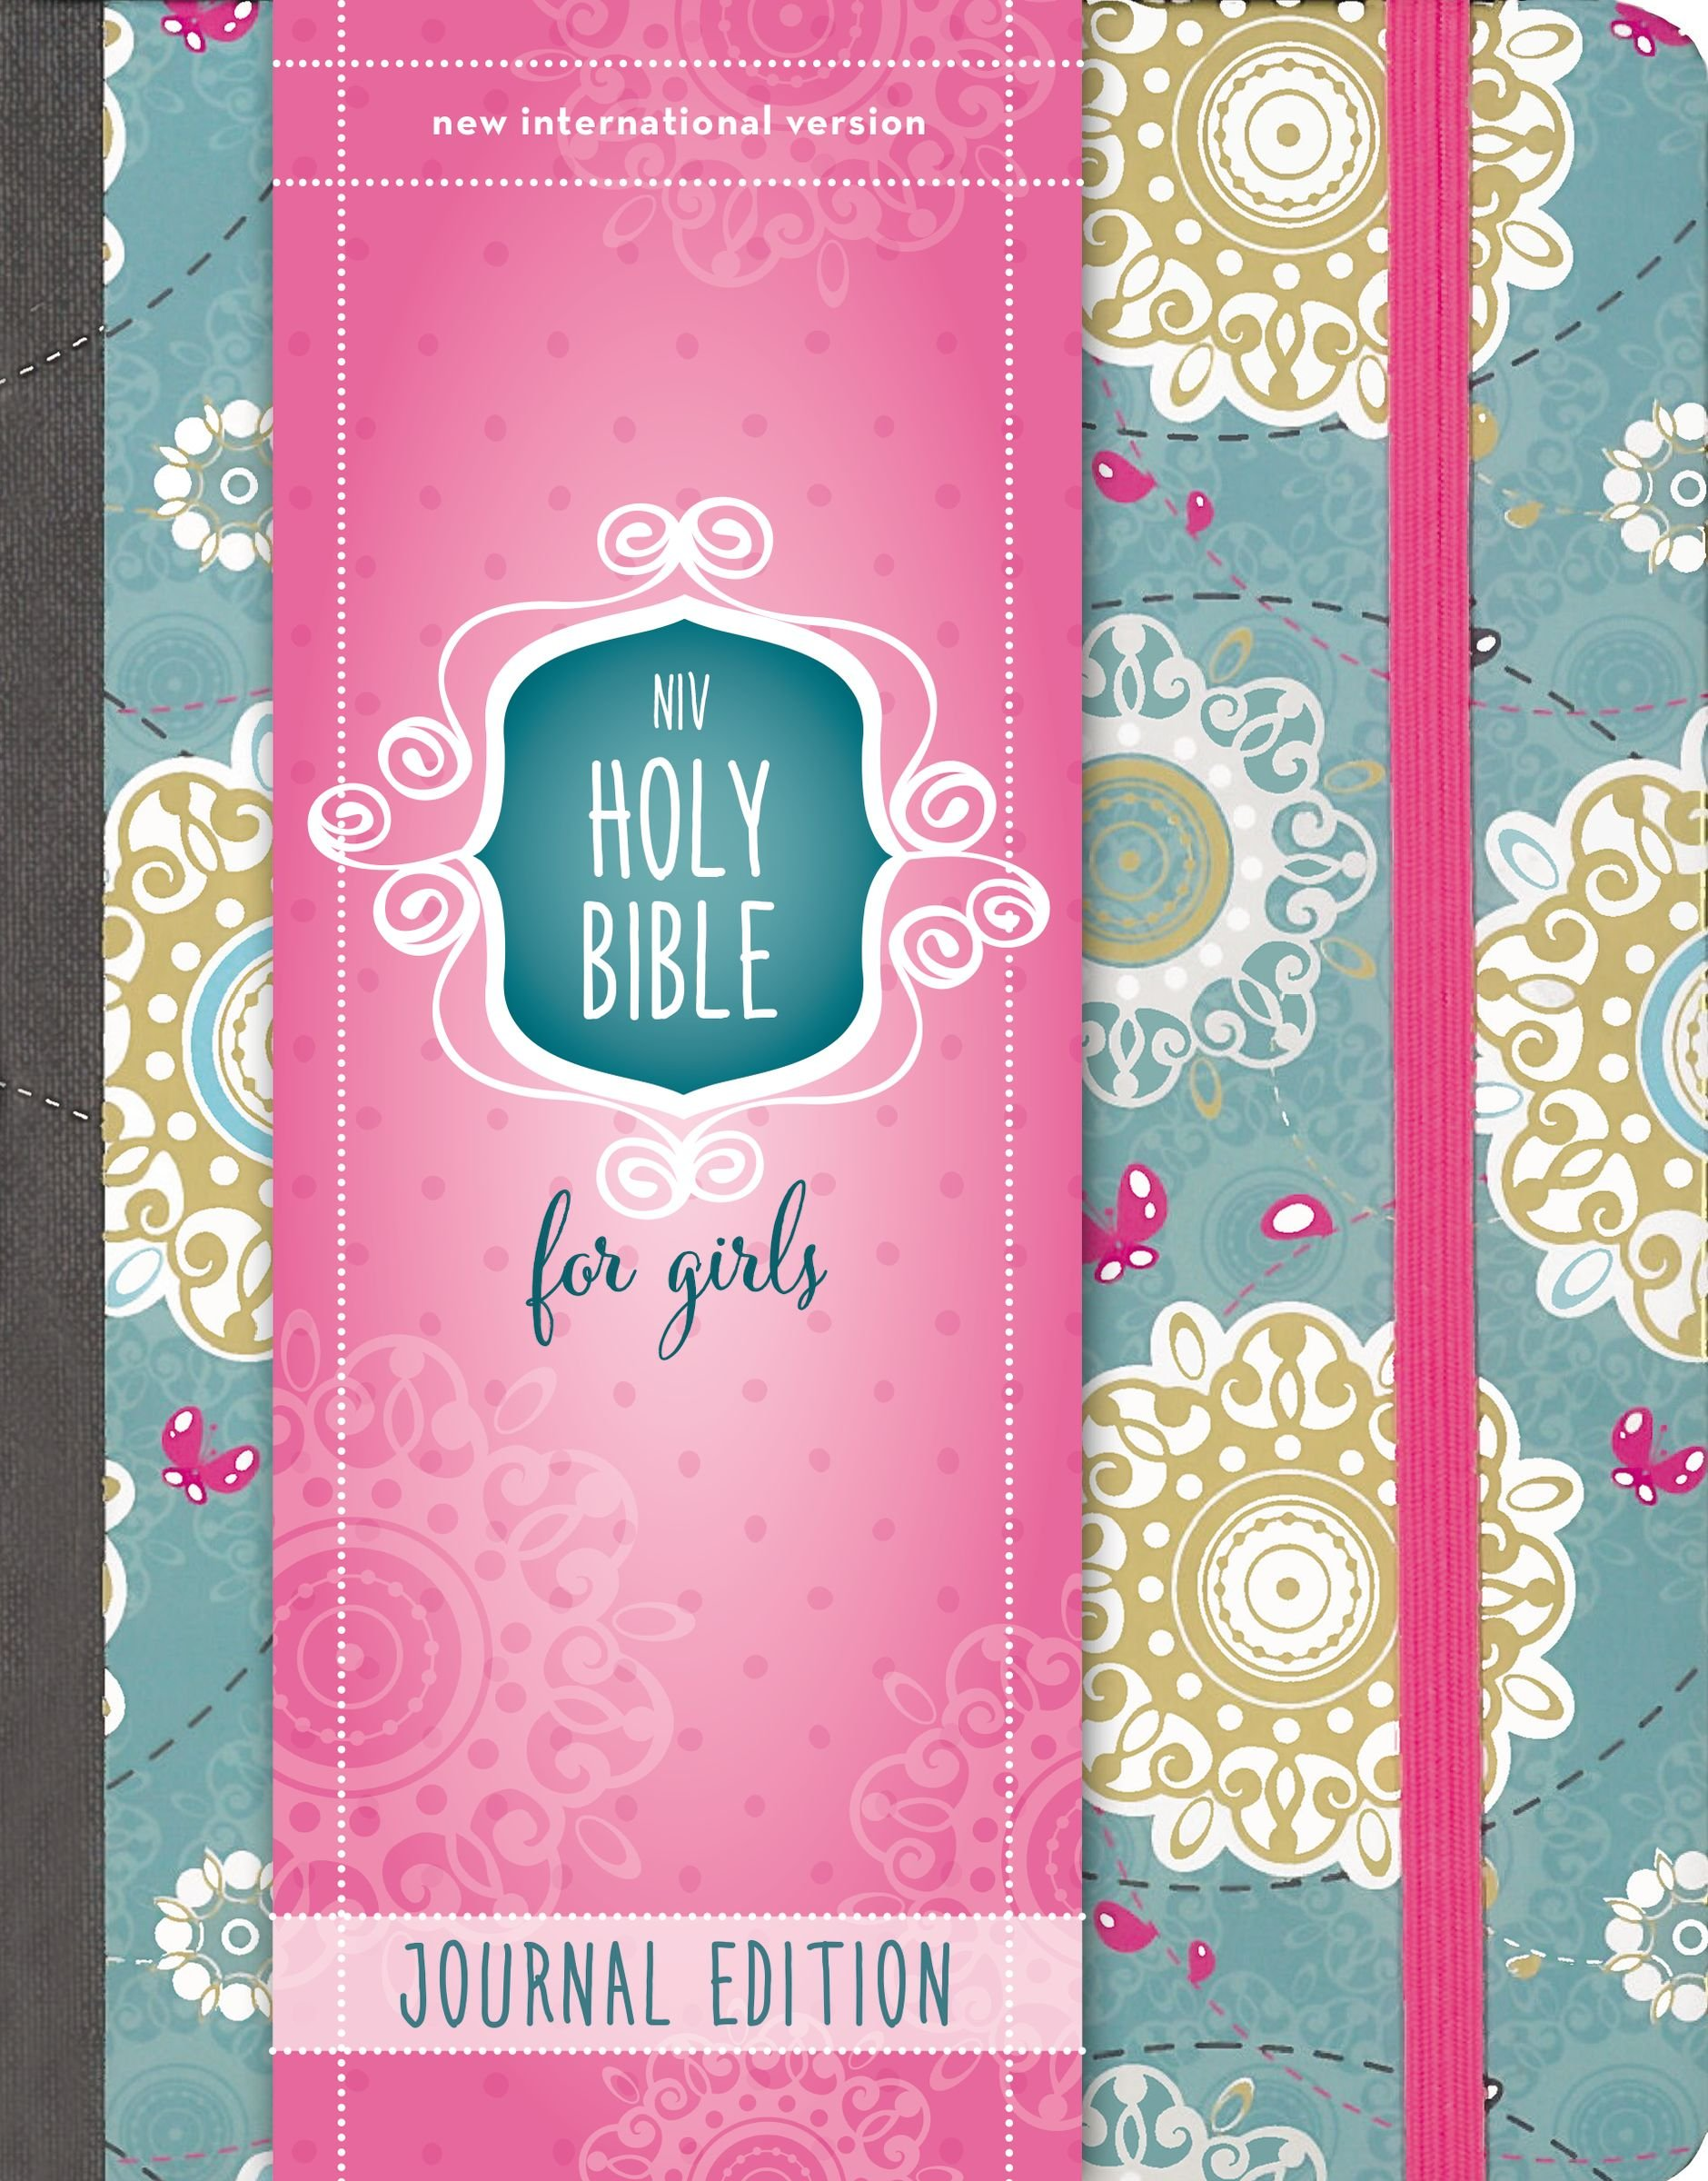 amazon holy bible new international version journal edition for